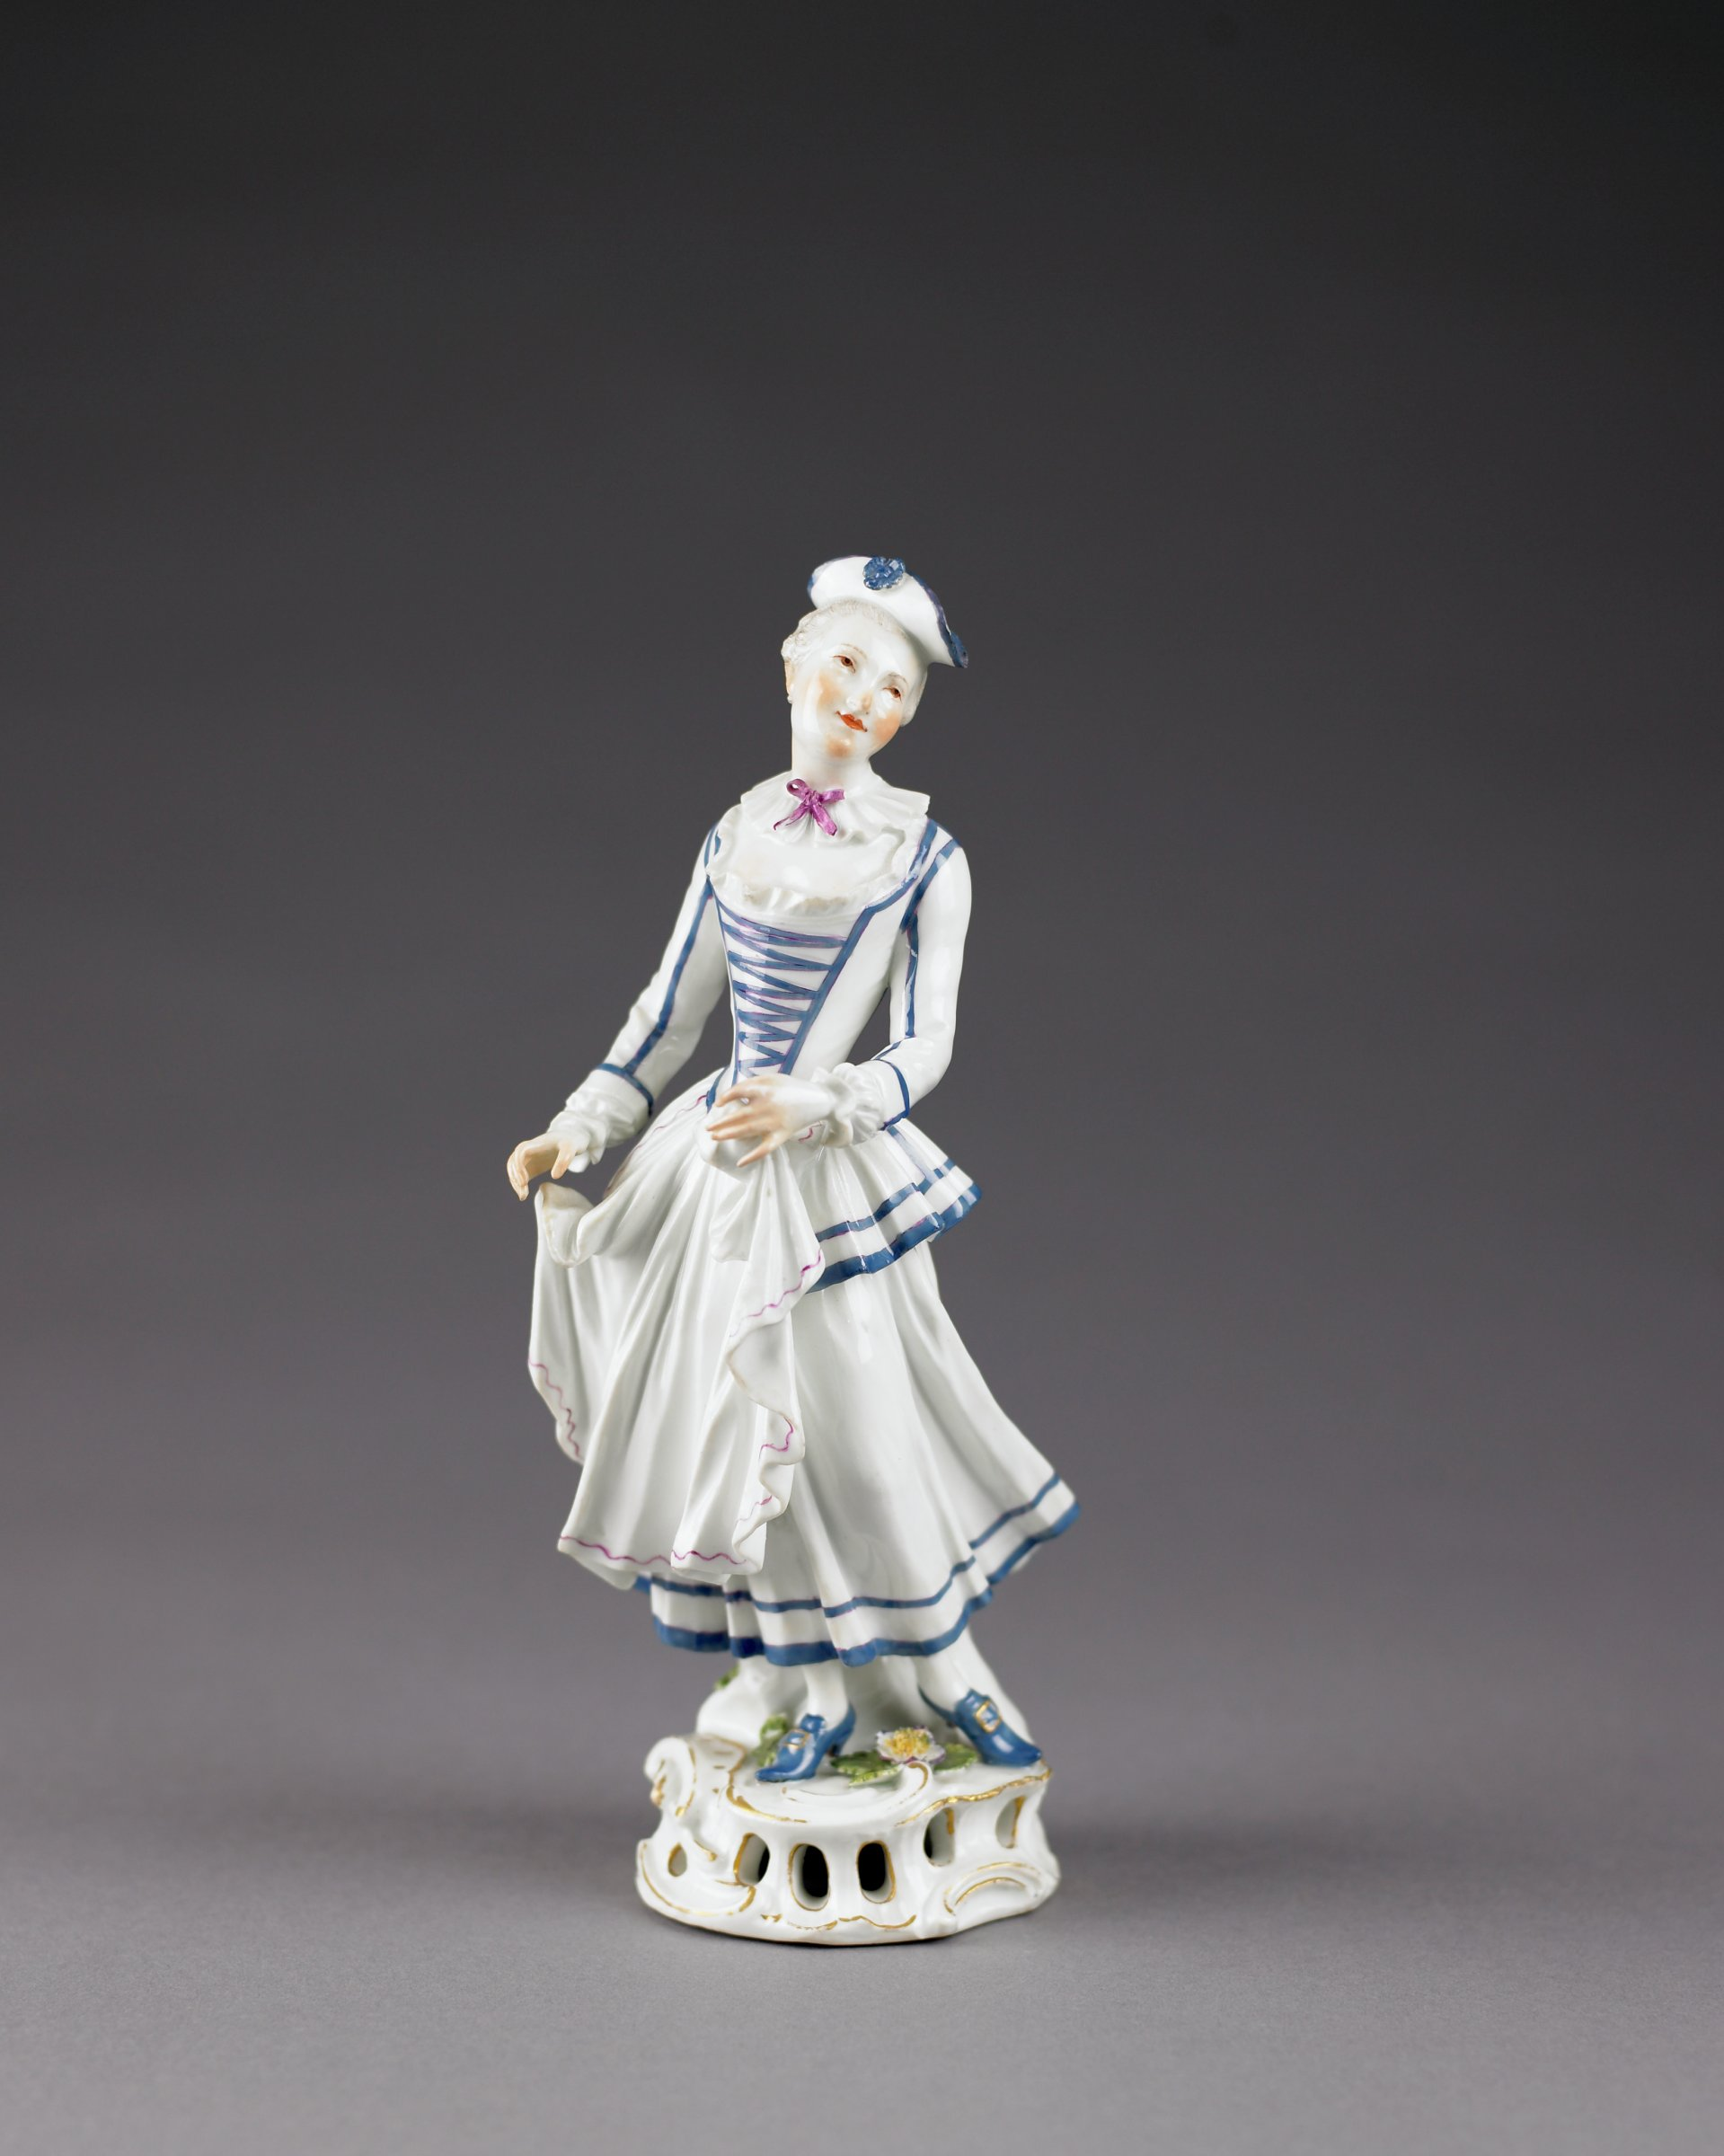 The figure of Pierrette standing on a rocaille base with pierced and gilded scrolls, the base decorated with small applied flowers with green leaves, Pierrette wears a costume in white consisting of a full skirt and a laced bodice trimmed in blue with iron red, with a ruffle collar tied with a lilac bow, her white apron trimmed in iron red, on her head a white tricorn hat with blue edging and flower, both hands are lowered to her apron and she stands with left leg behind and leaning slightly left as if in movement, her shoes are blue with gilt buckles